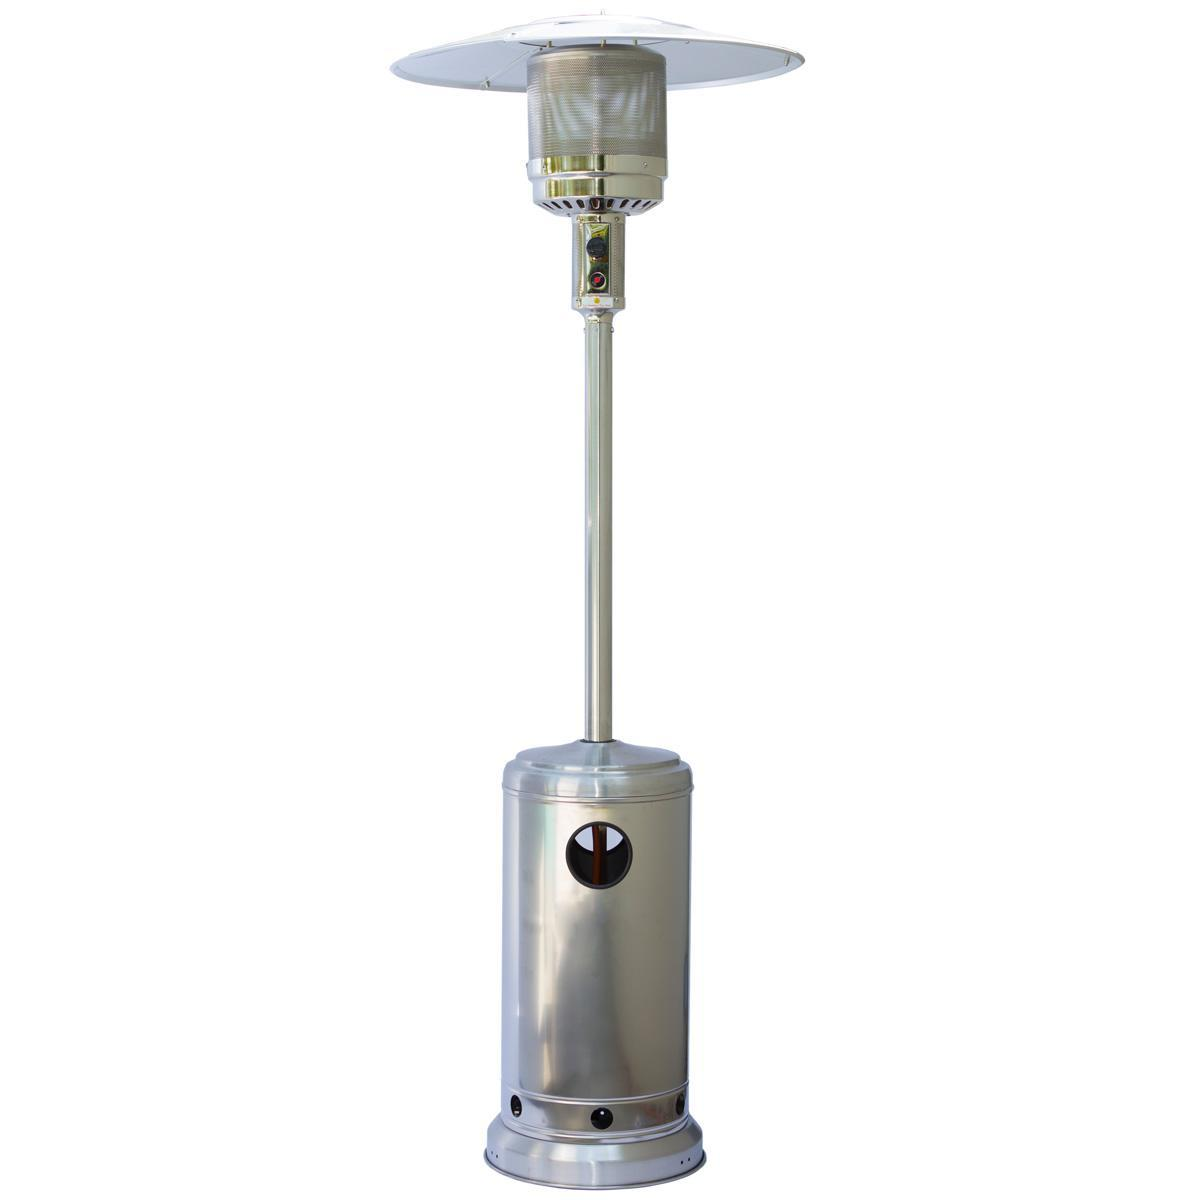 sherpa 13kw stainless steel gas patio heater